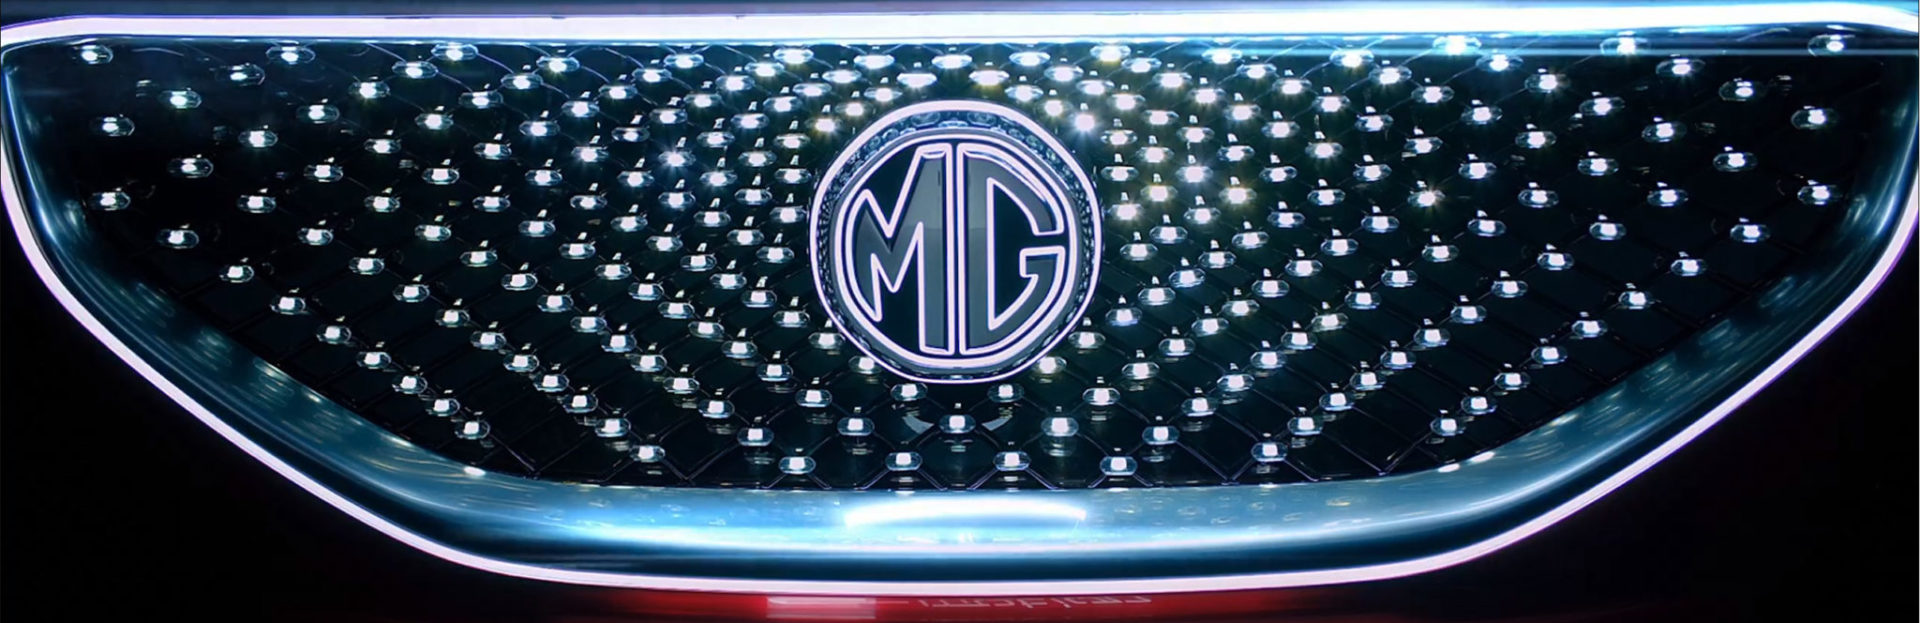 mg_about_fullbleed_video_thumb_desktop